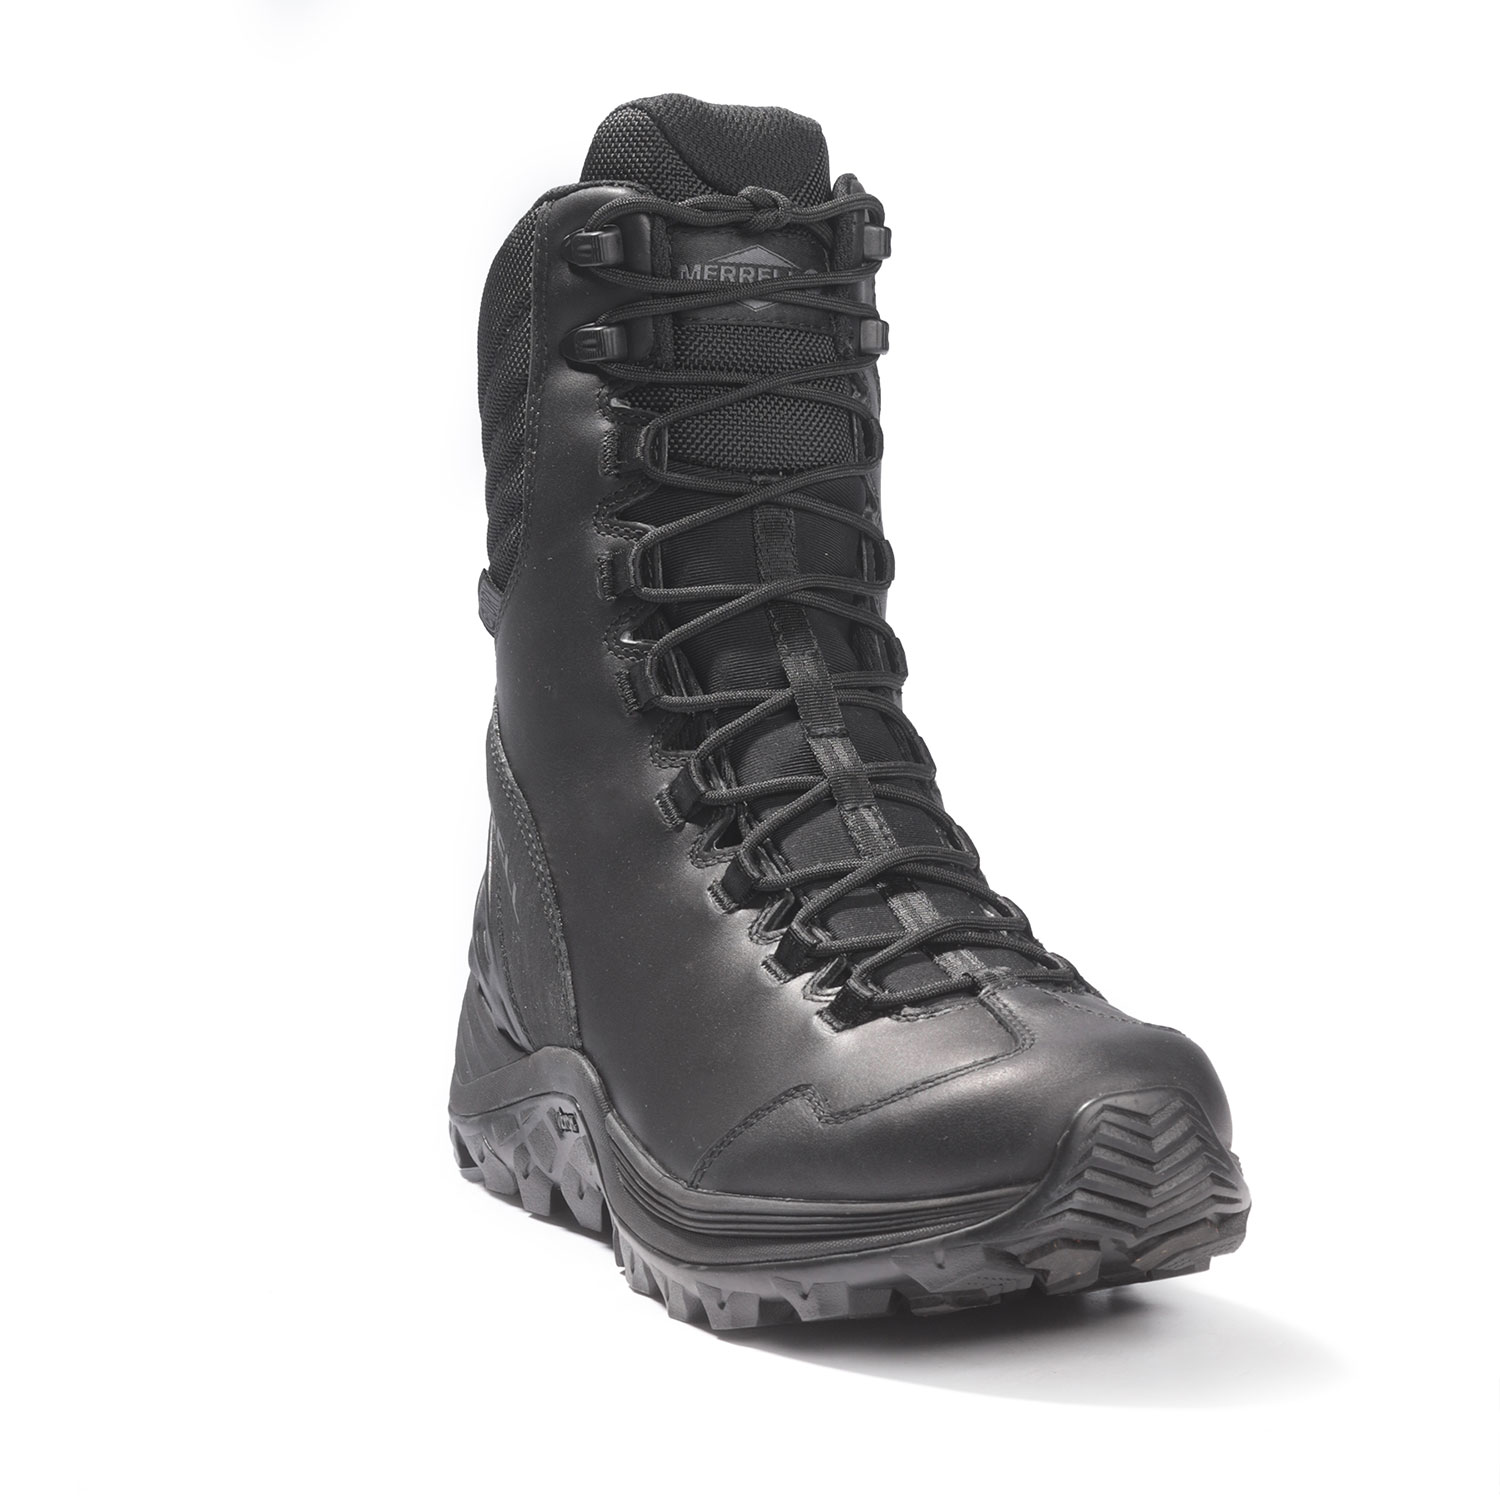 8b3ce967a67 Merrell Tactical Thermo Rogue Tactical Waterproof Ice+.